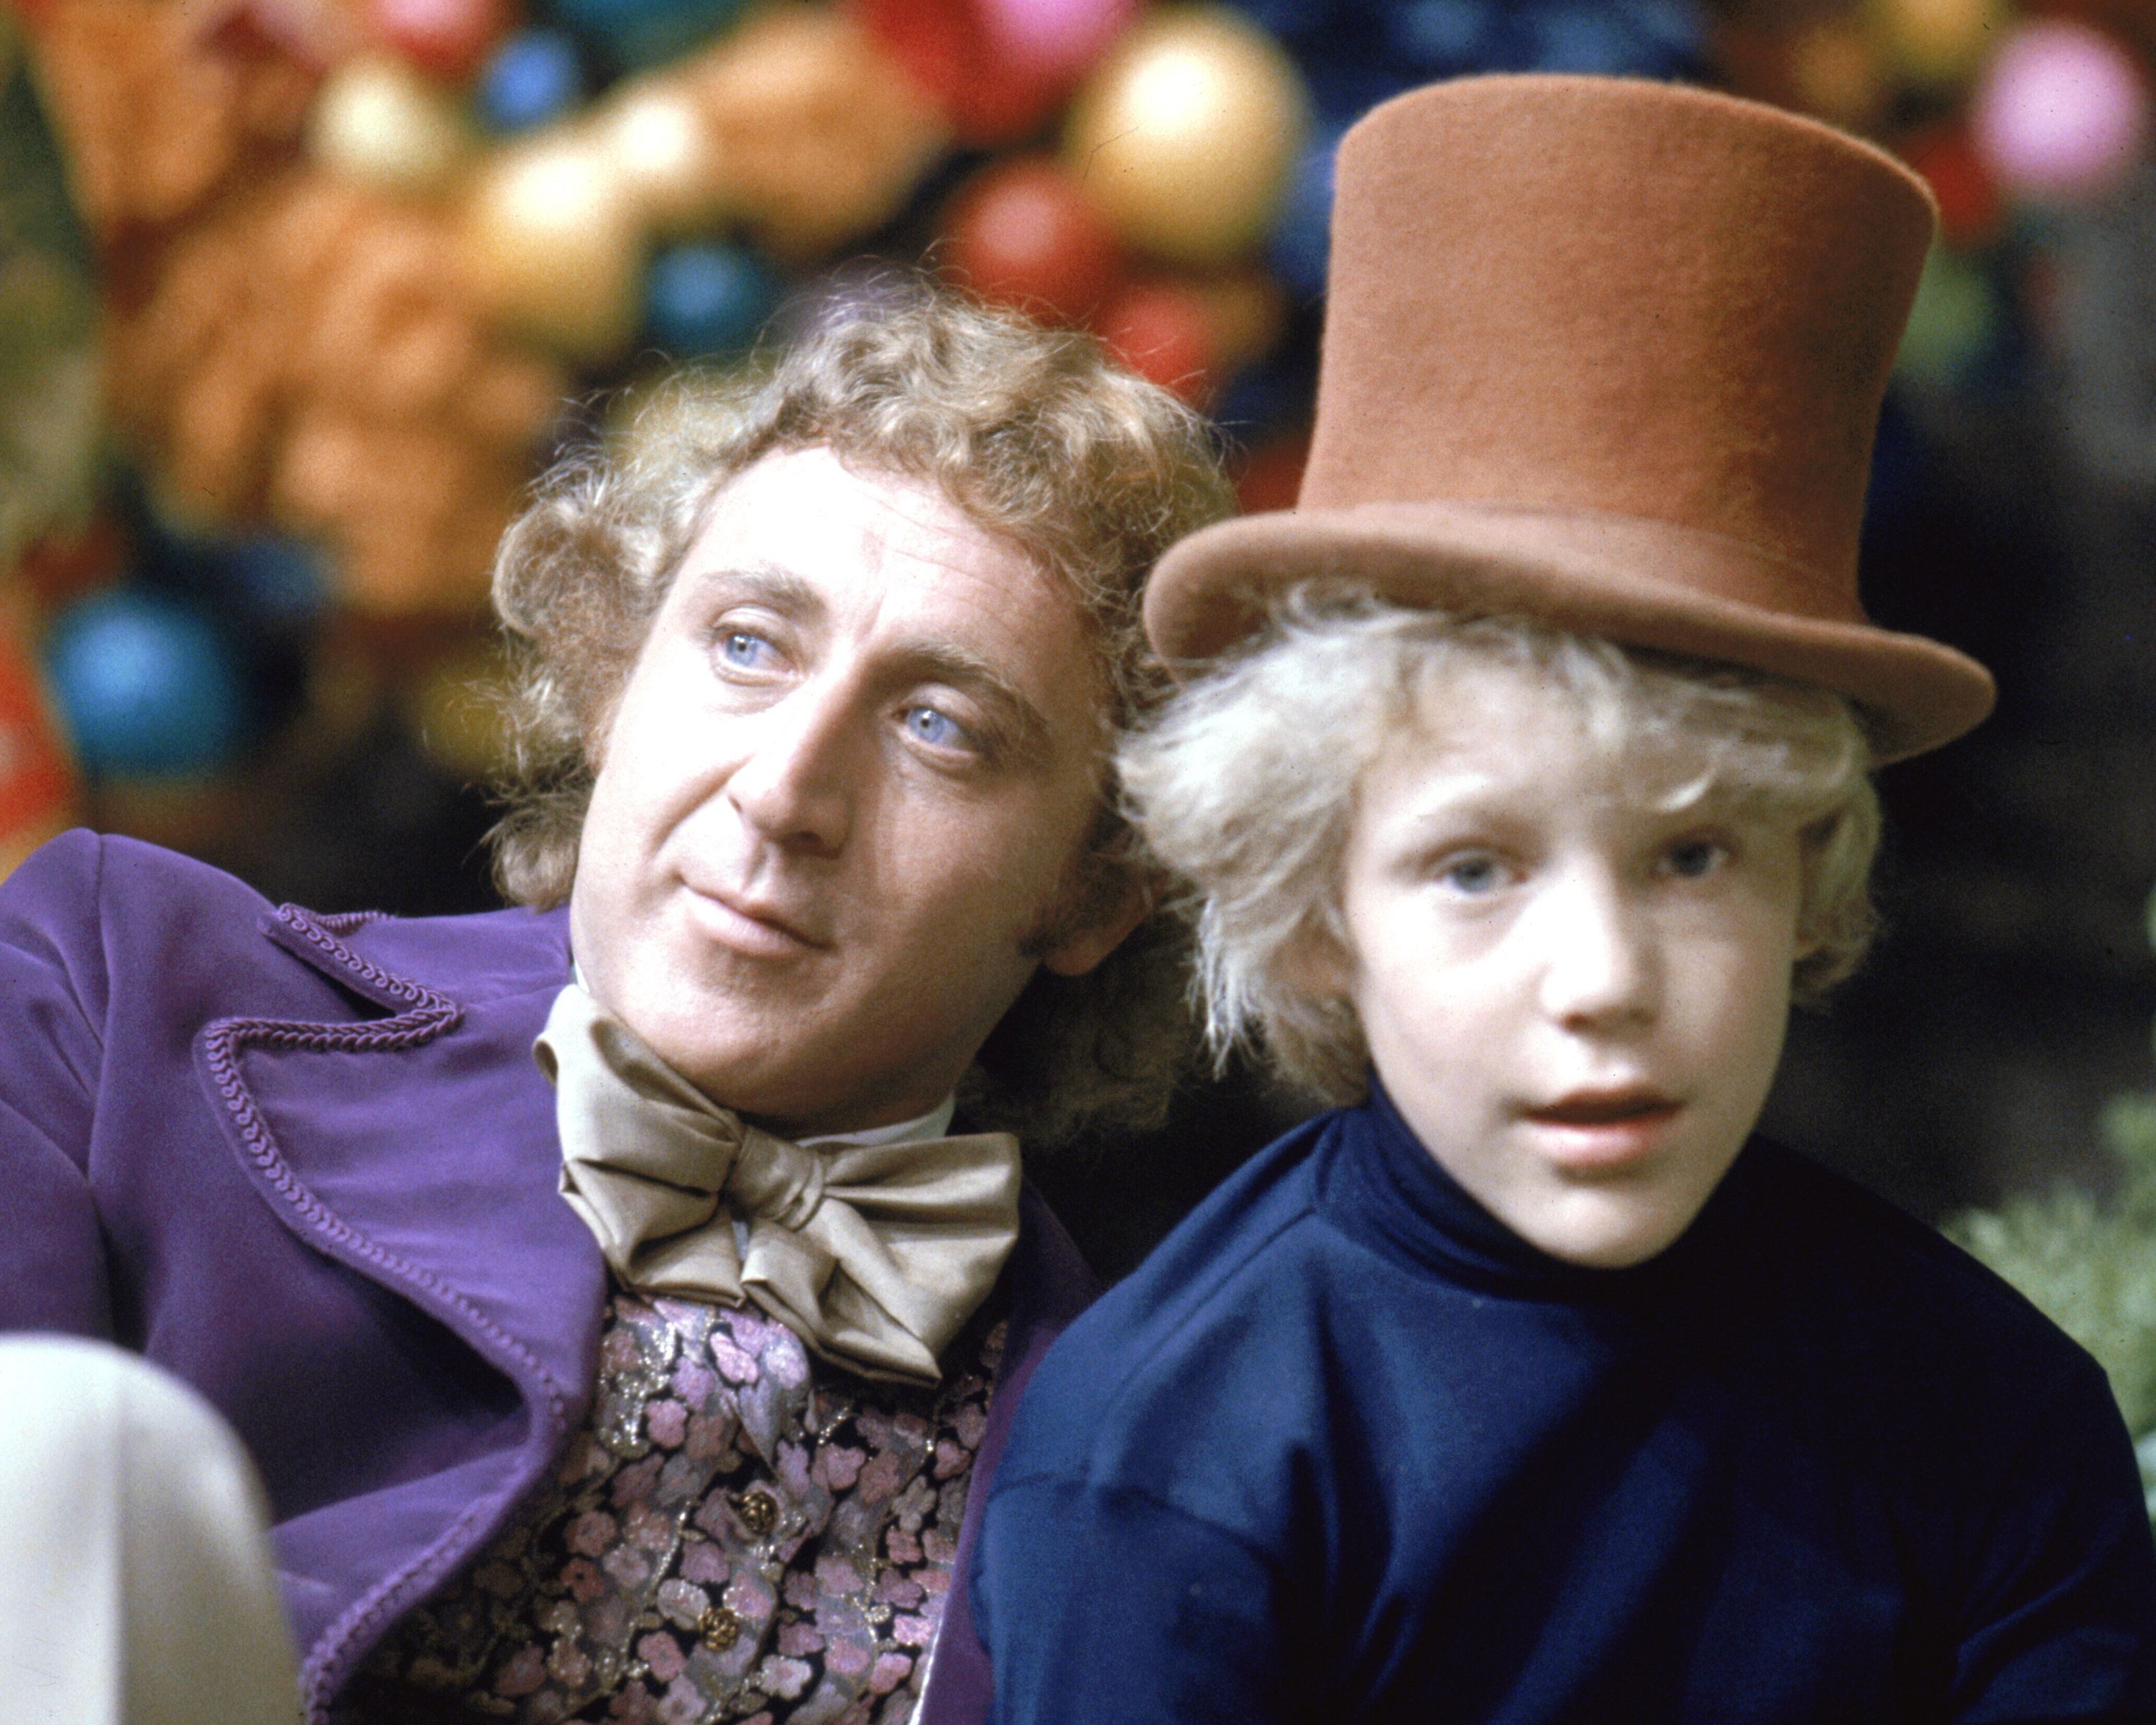 Gene Wilder as Willy Wonka and Peter Ostrum as Charlie Bucket on the set of the fantasy film 'Willy Wonka & the Chocolate Factory', based on the book by Roald Dahl, 1971.  (Photo by Silver Screen Collection/Getty Images)